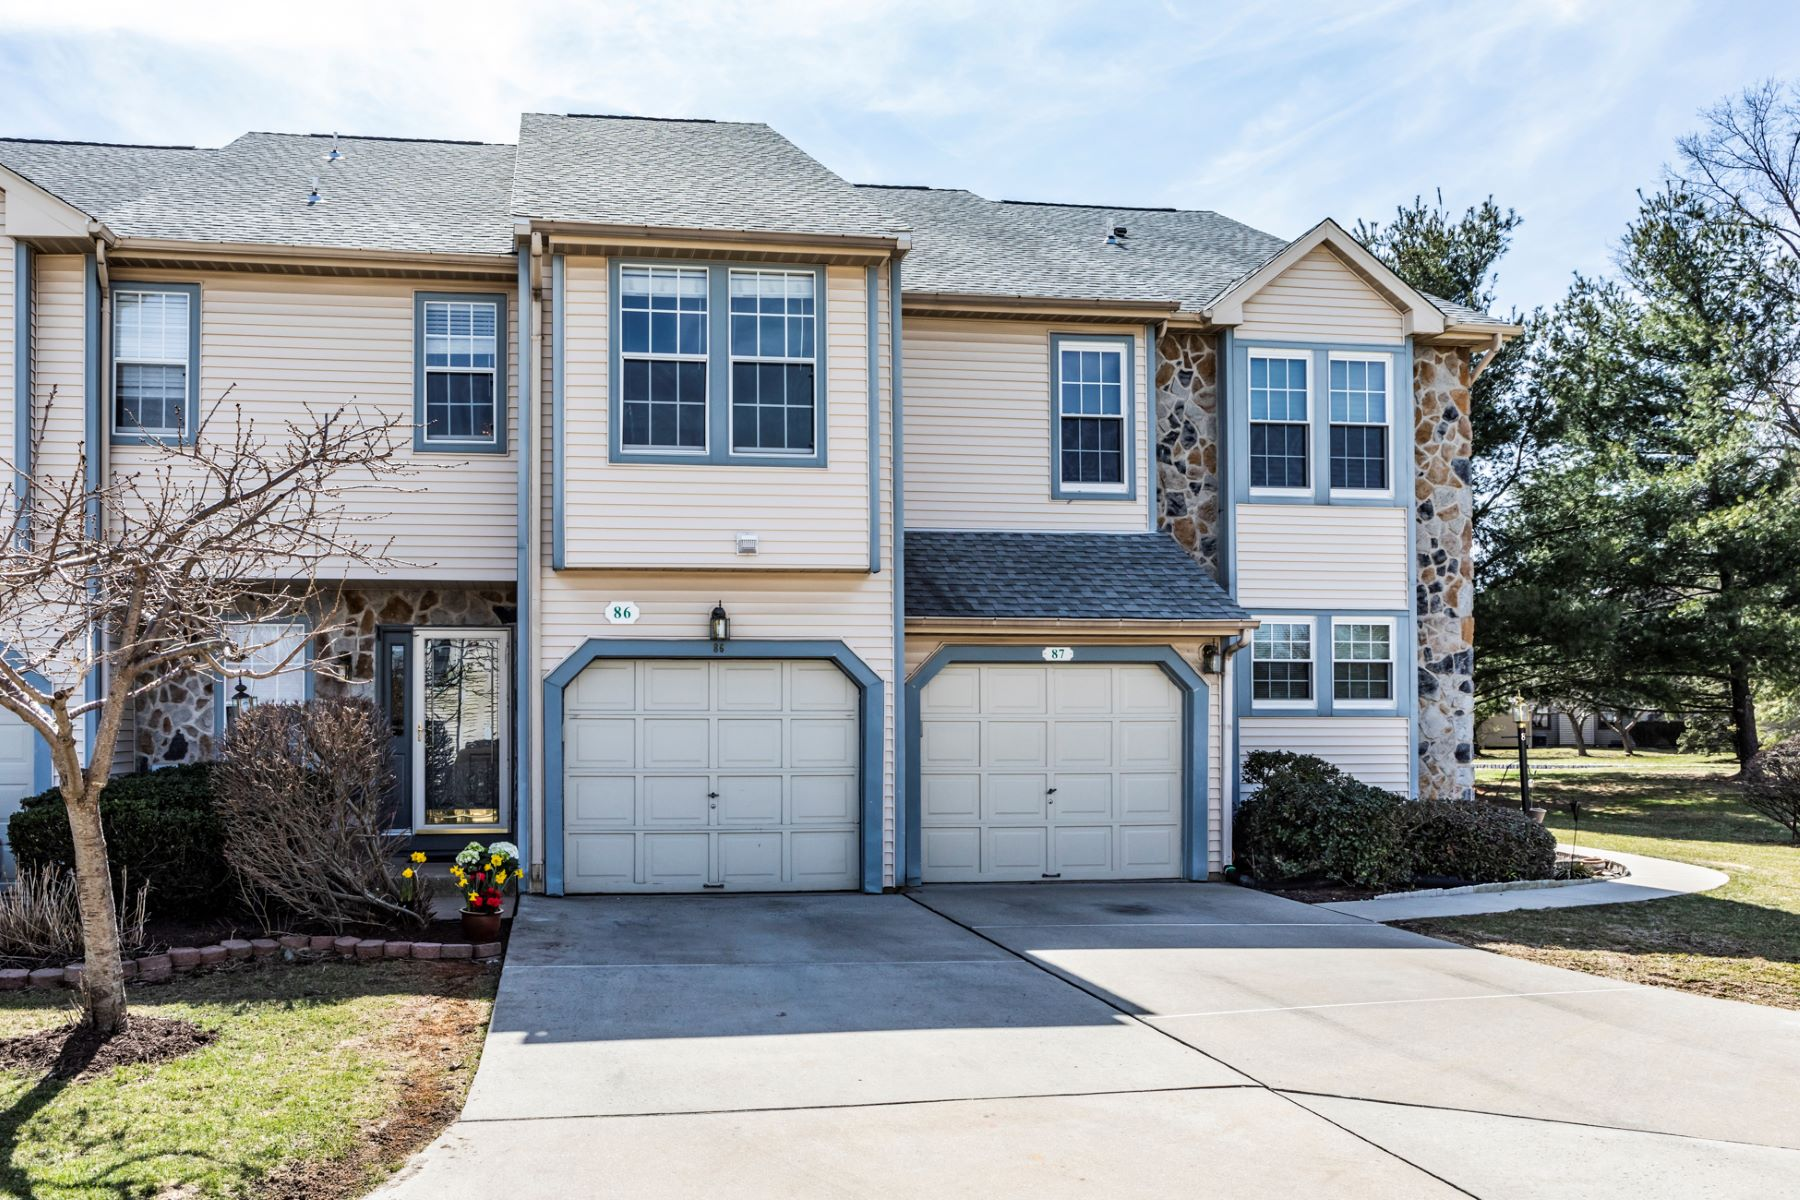 Property for Sale at Filled To The Brim With Stylish Upgrades 86 Castleton Road, Princeton, New Jersey 08540 United States